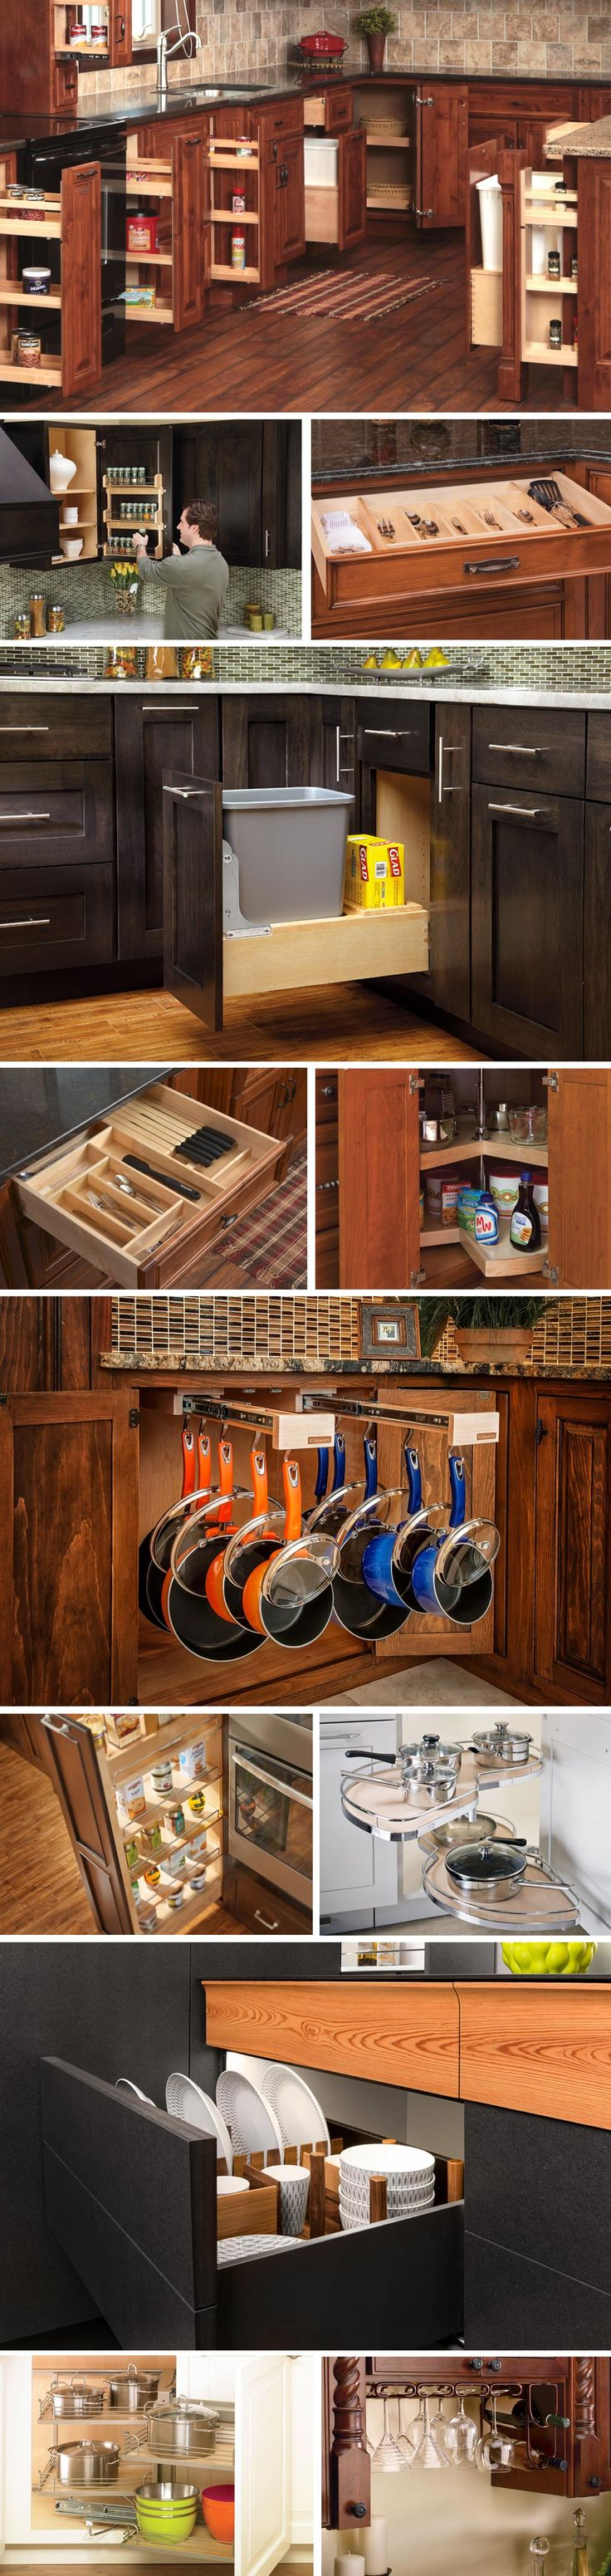 Best 25 Pull out kitchen cabinet ideas on Pinterest